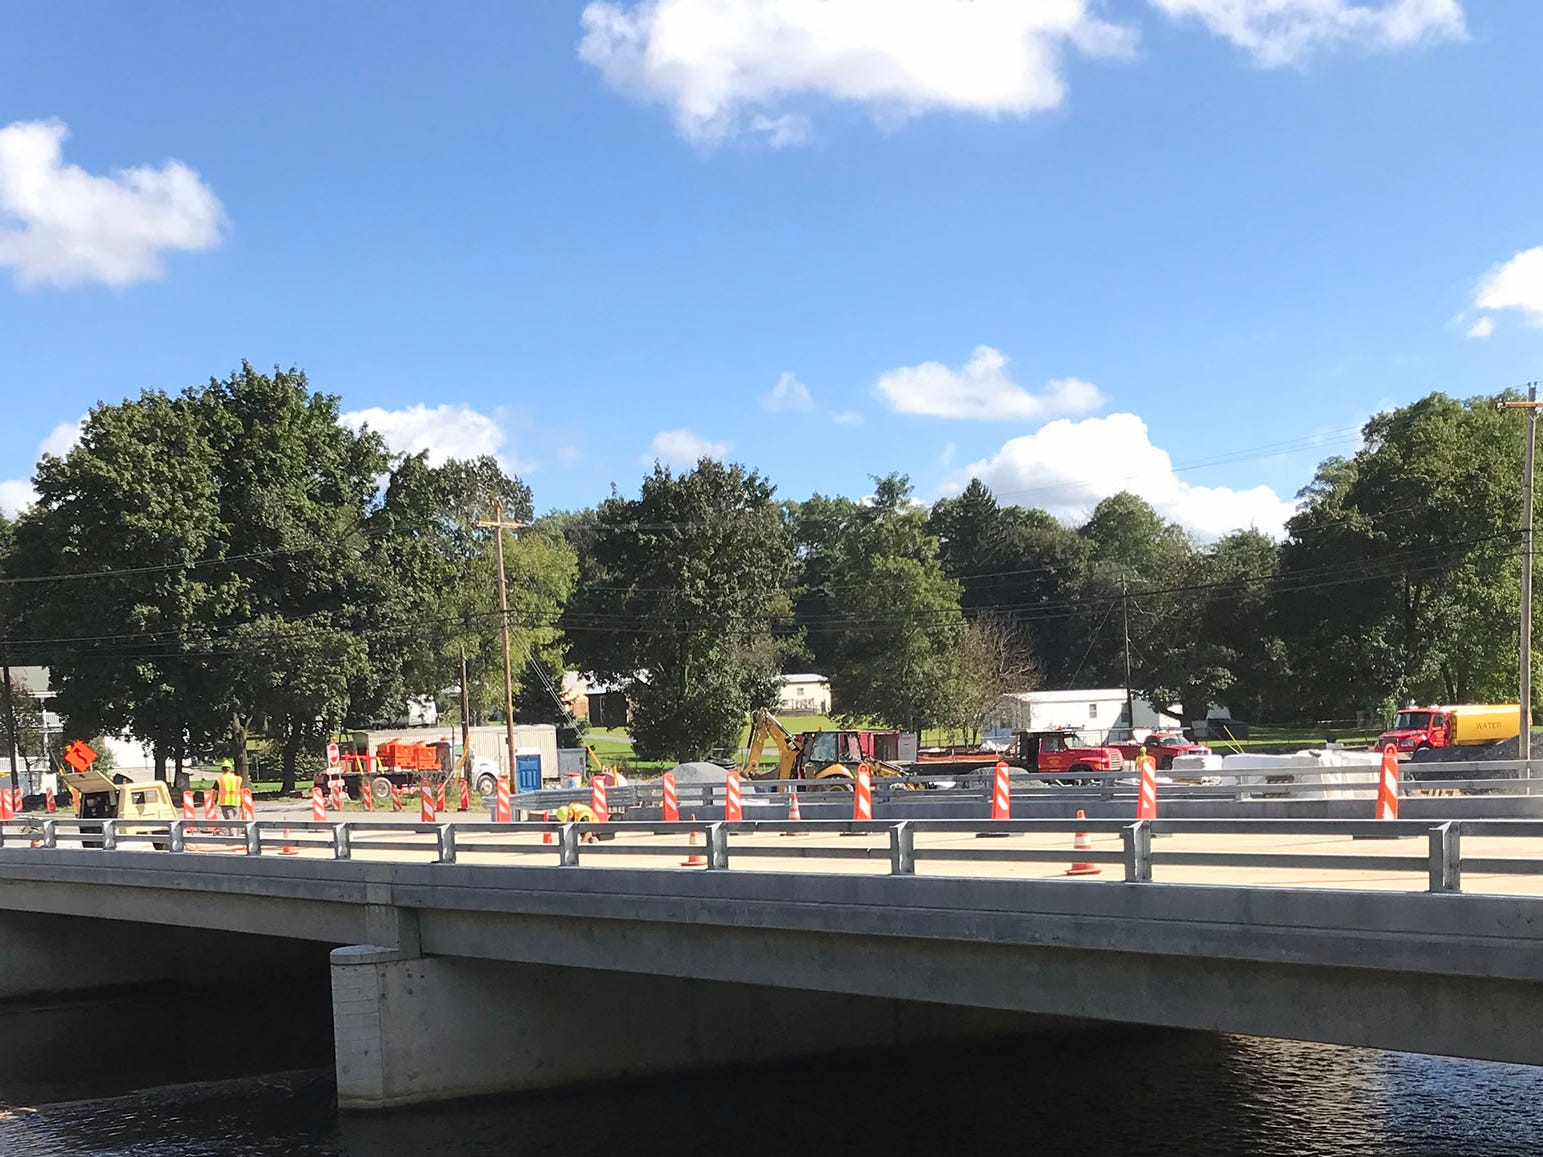 Bridge work continues on US 11 (Philadelphia Avenue) on Wednesday, October 10, 2018 as traffic is moved to the other side.